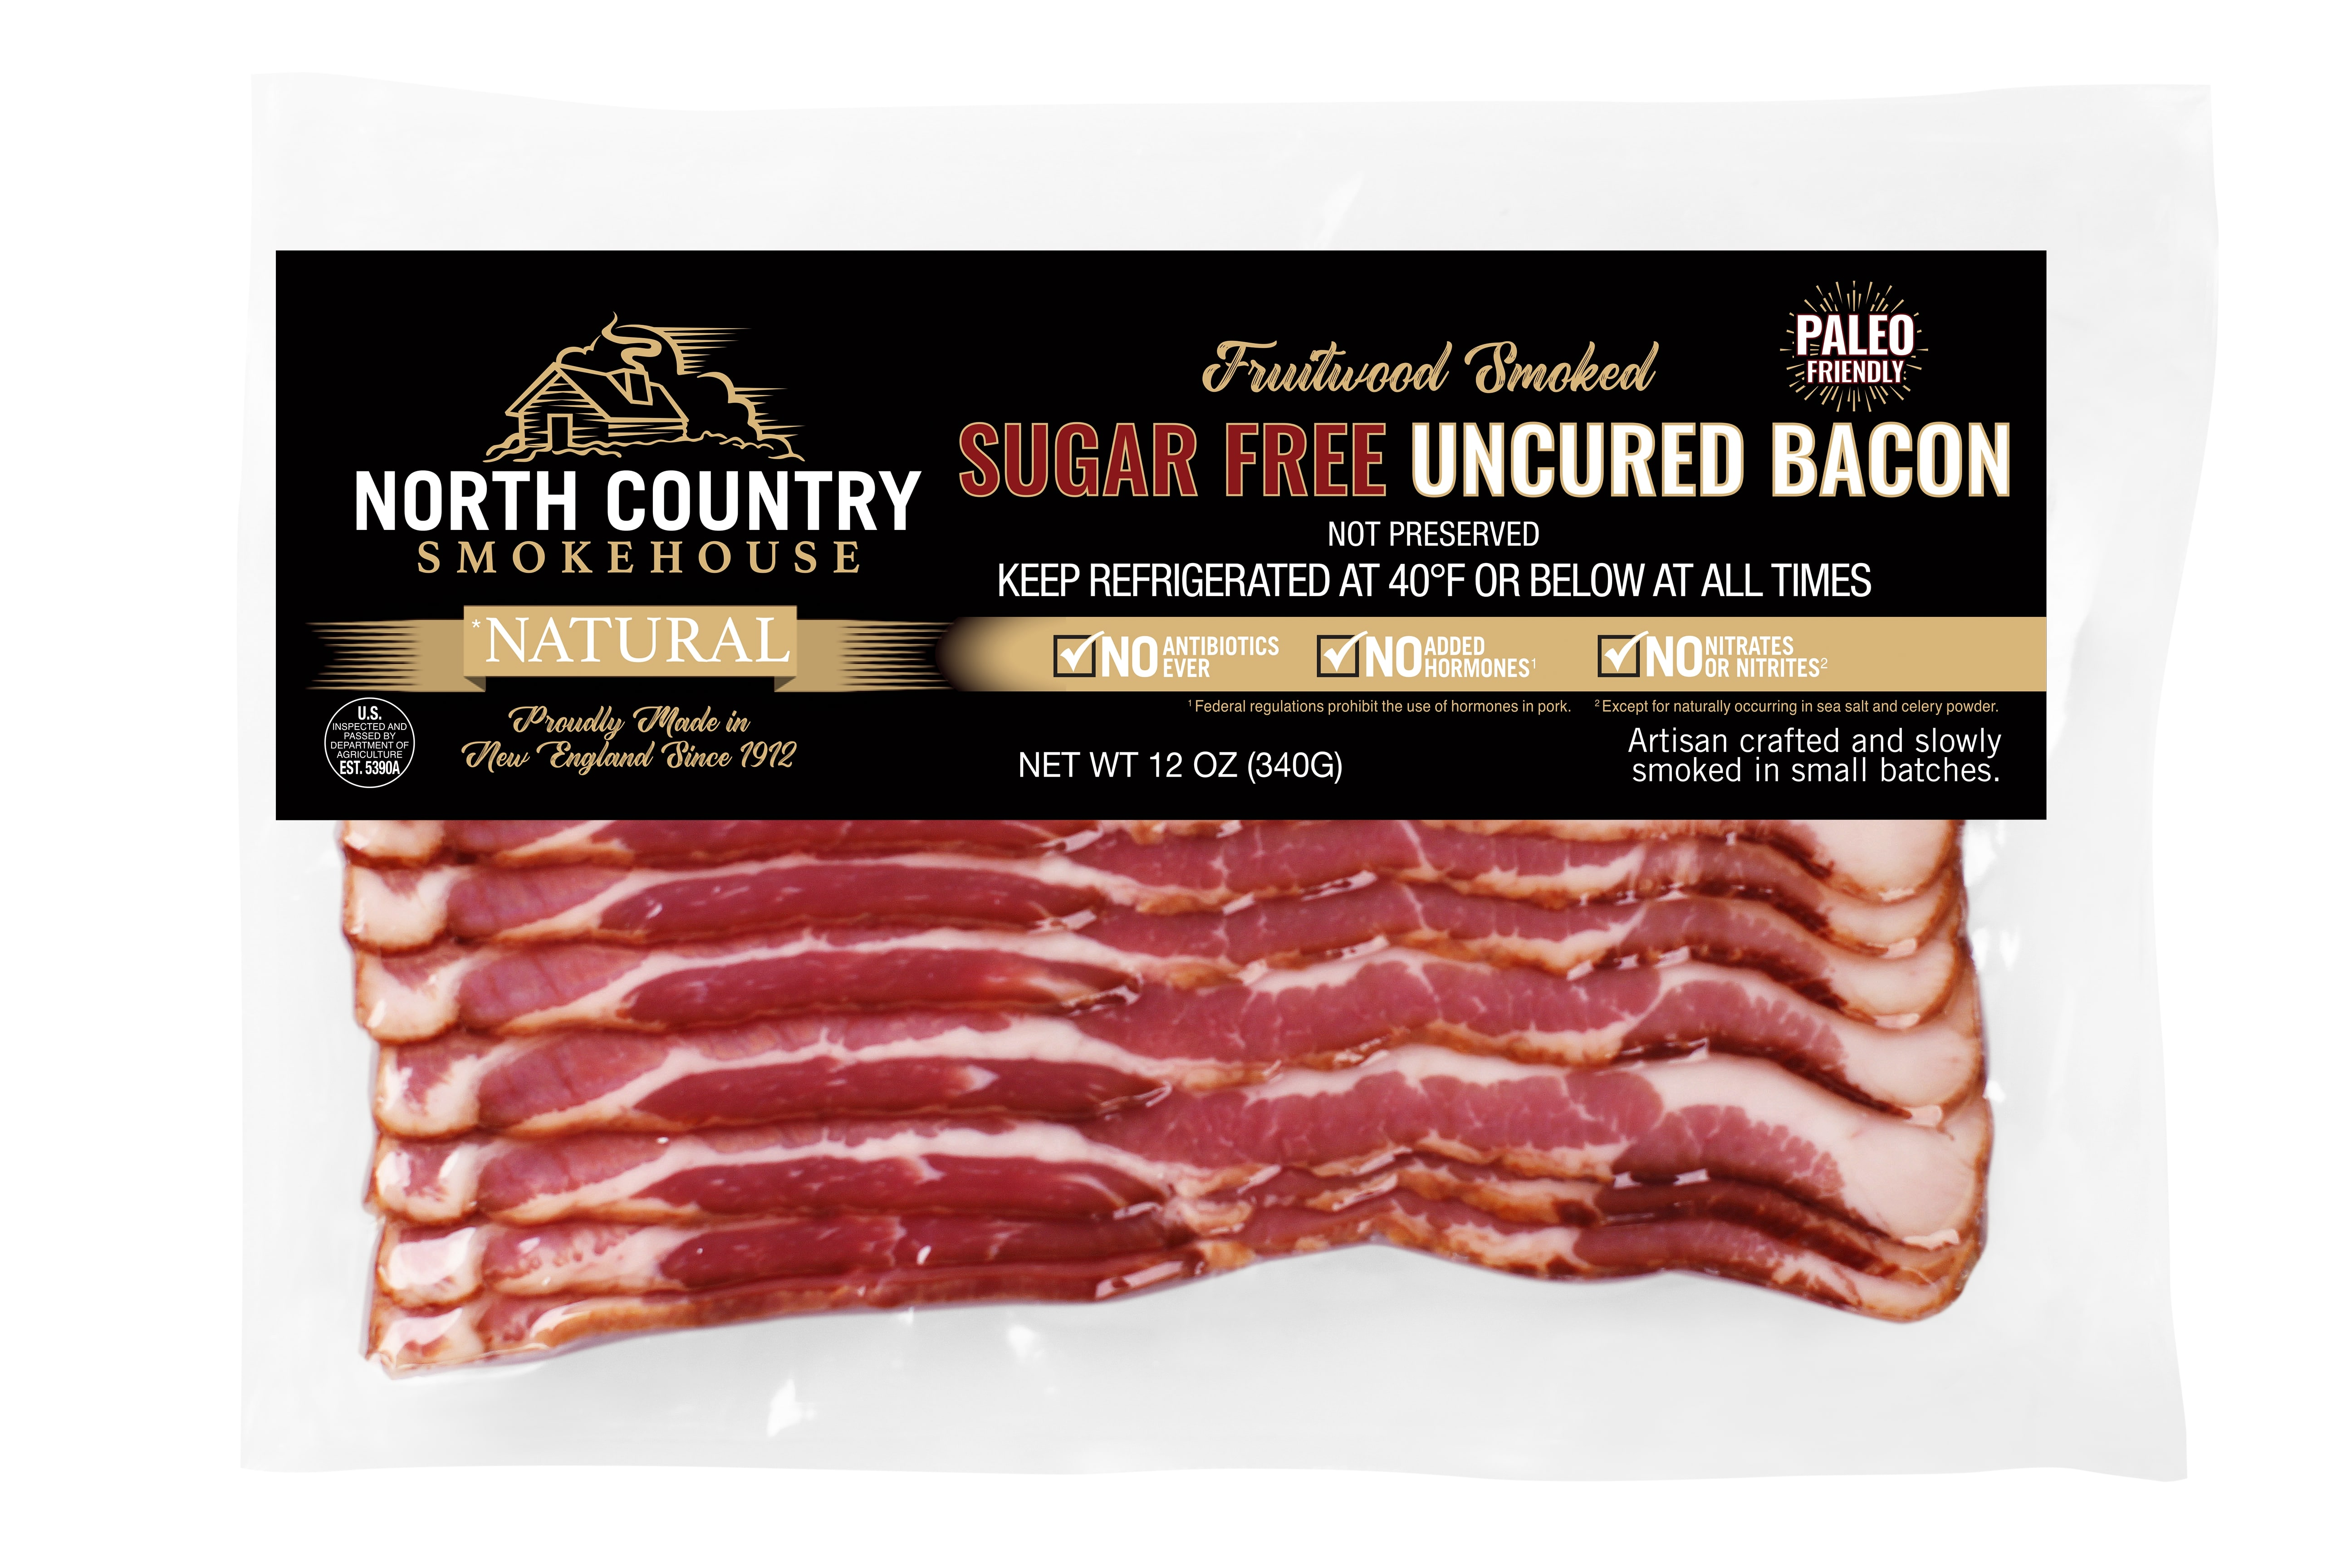 North Country Smokehouse Launches New Line of Sugar-Free Bacon